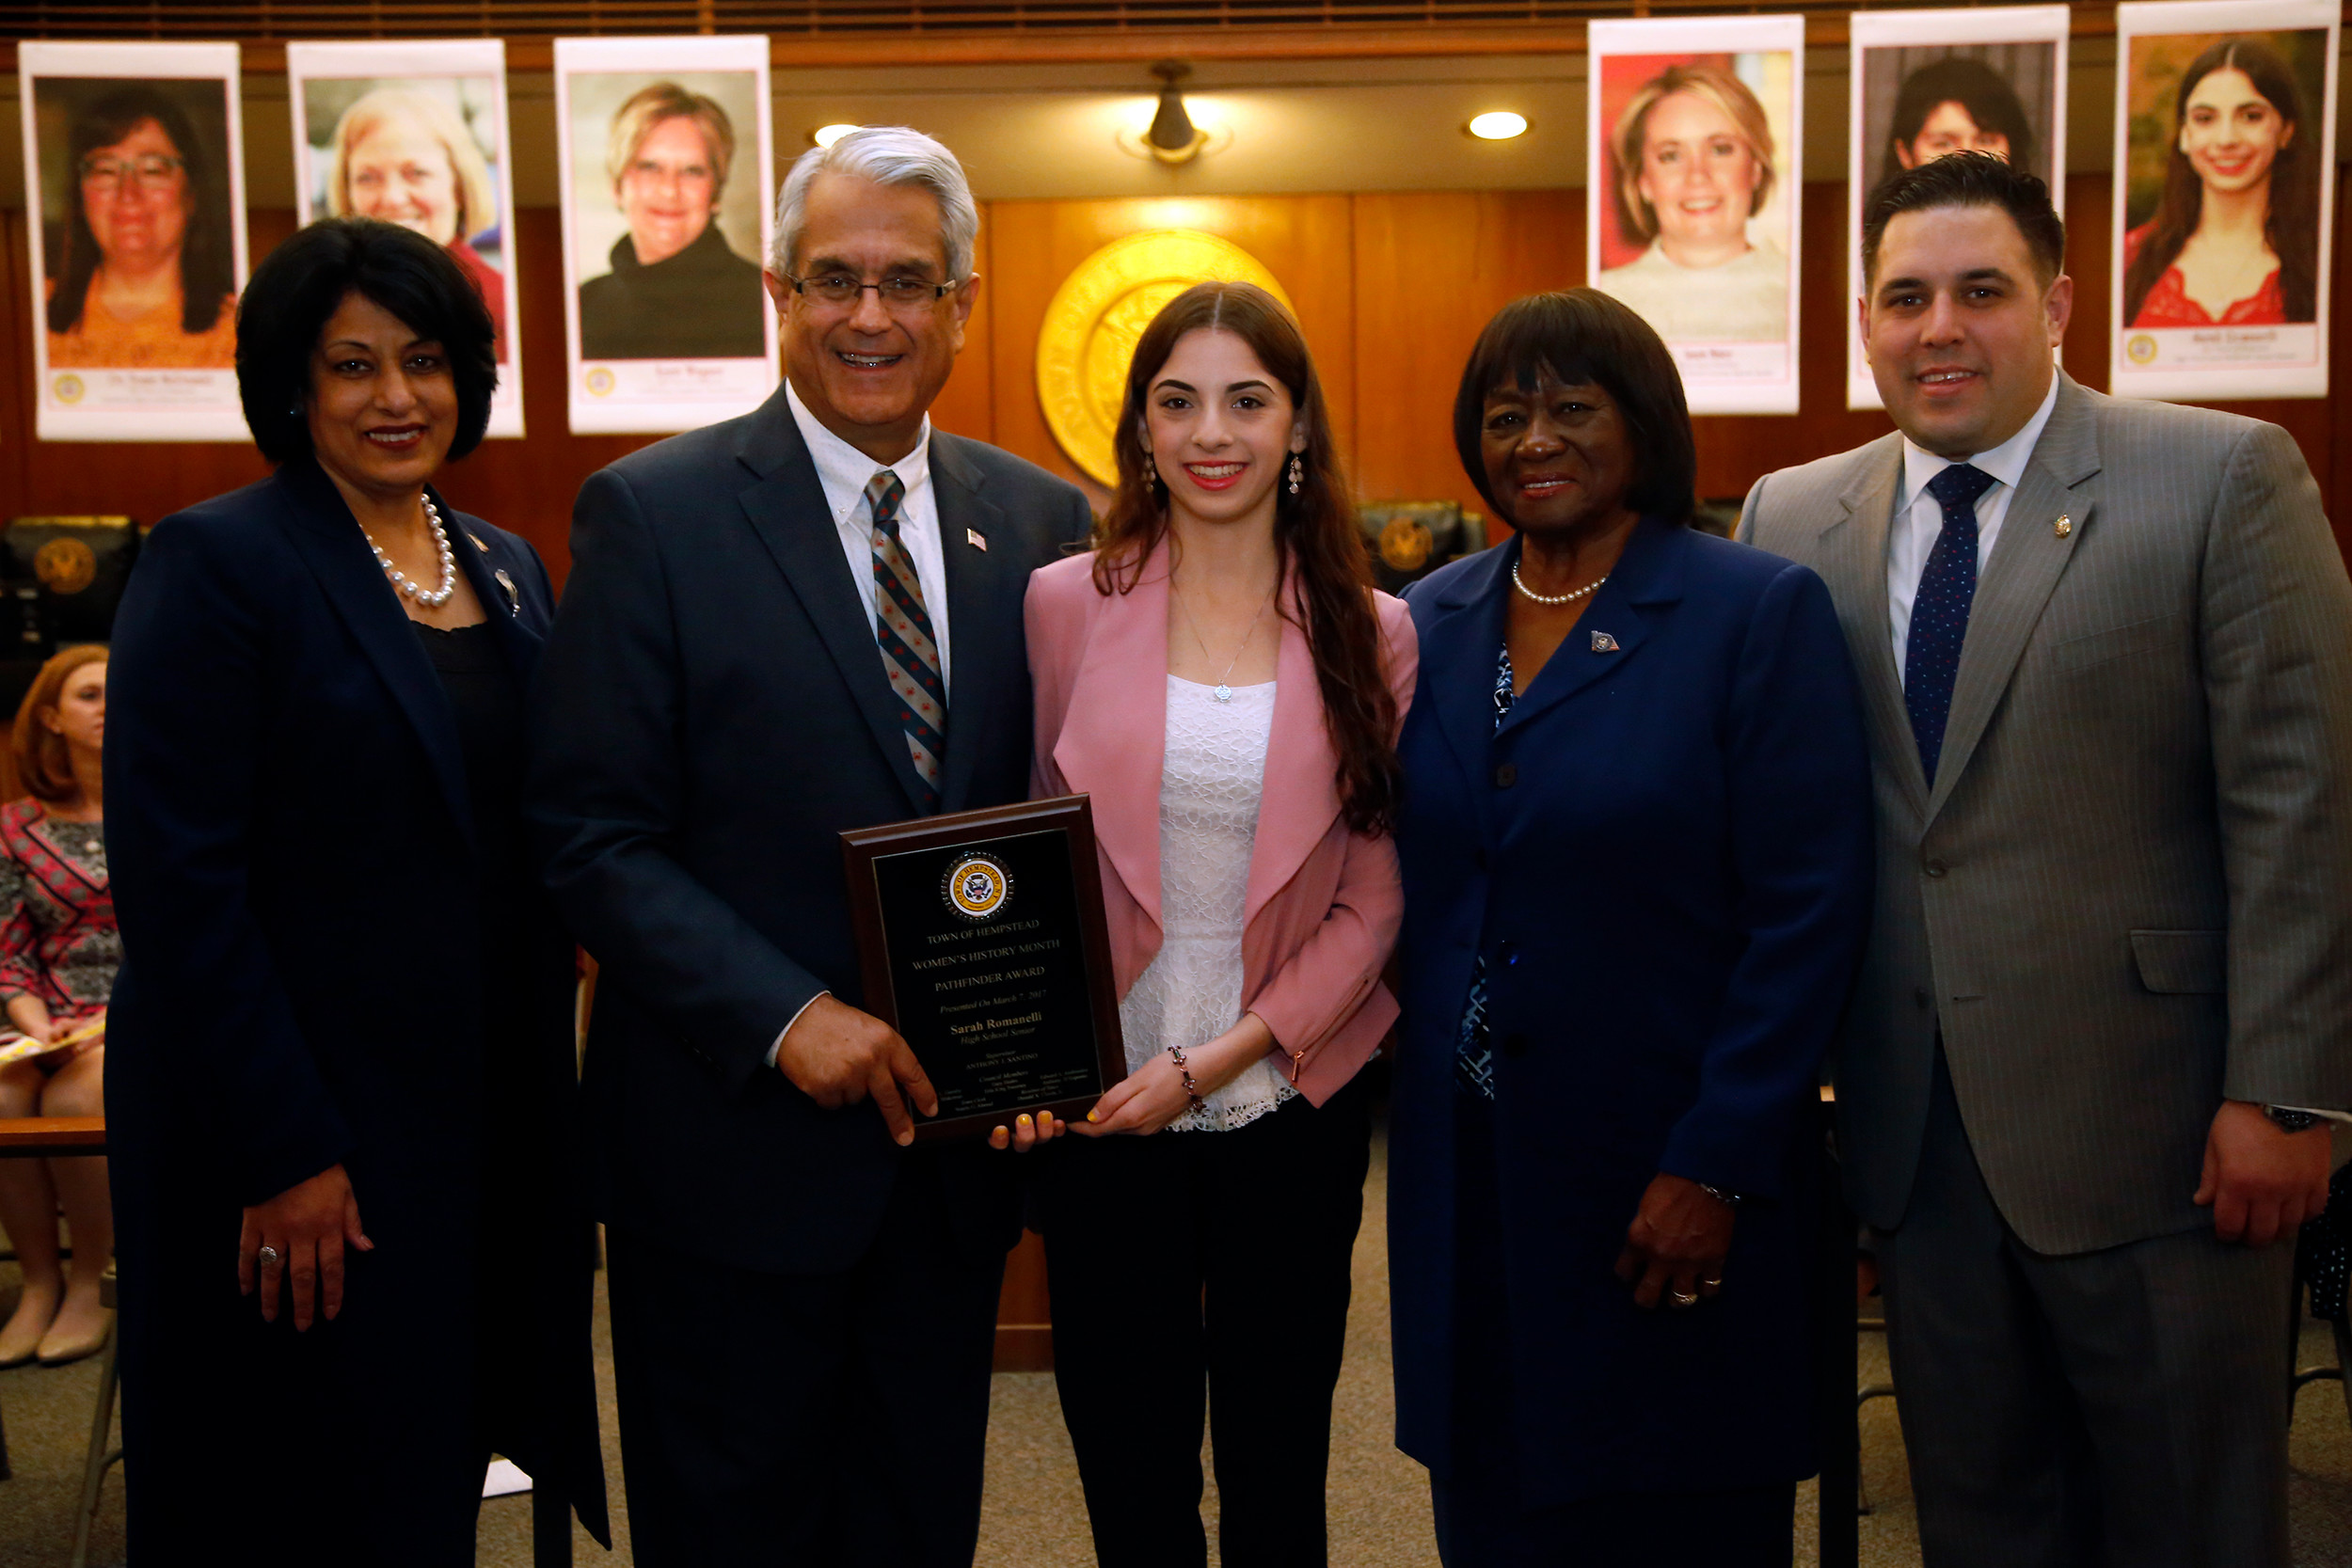 Sara Romanelli, receiving the High School Senior Award with Town Clerk Nasrin Ahmad, far left, Hempstead Town Supervisor Anthony Santino, Town Councilwoman Dorothy Goosby, and Town Councilman Anthony D'Esposito.